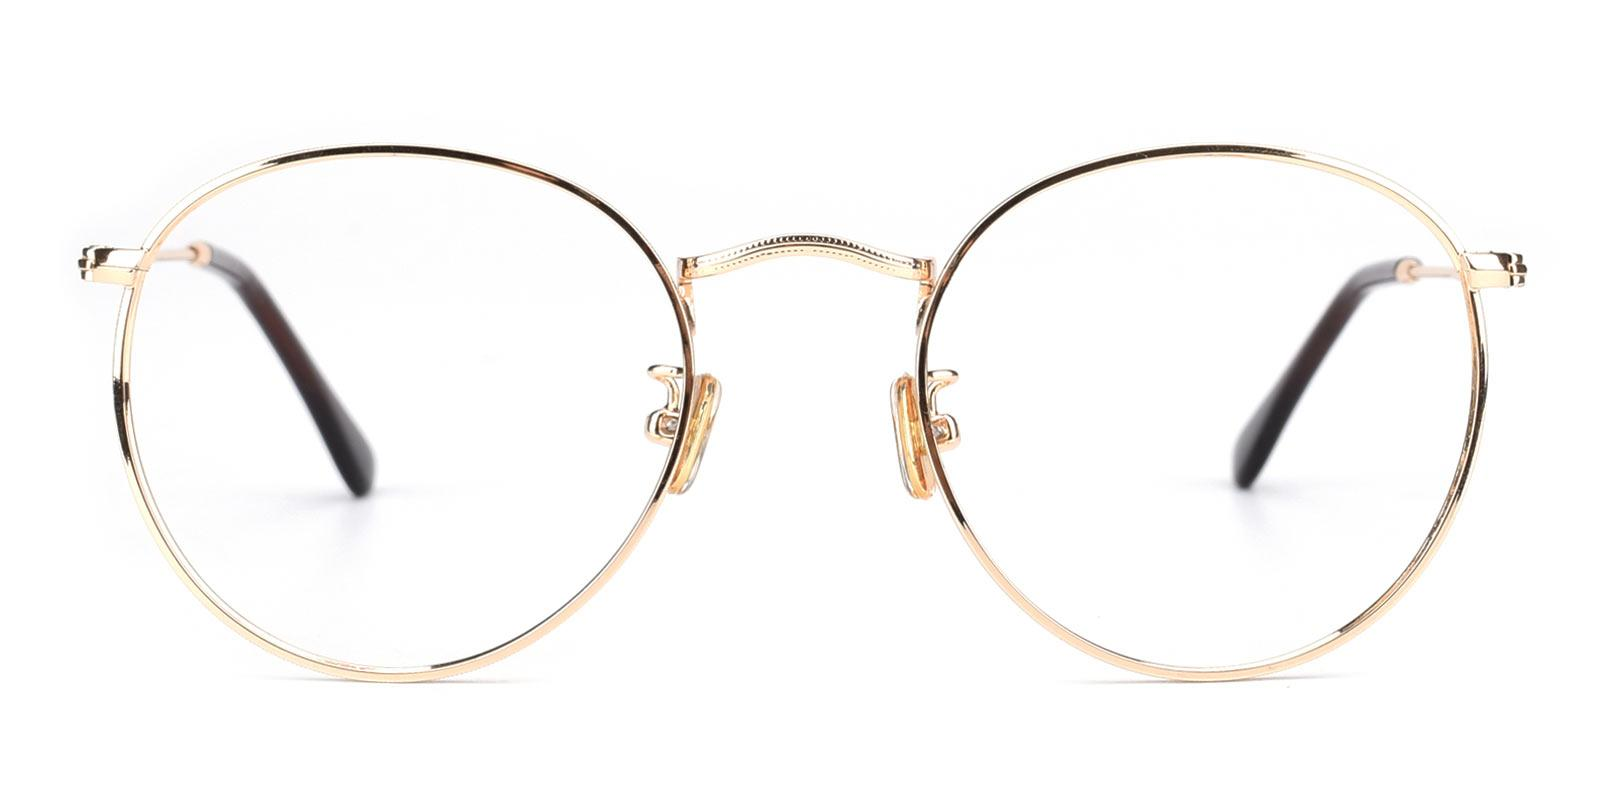 Canary-Gold-Round-Metal-Eyeglasses-detail